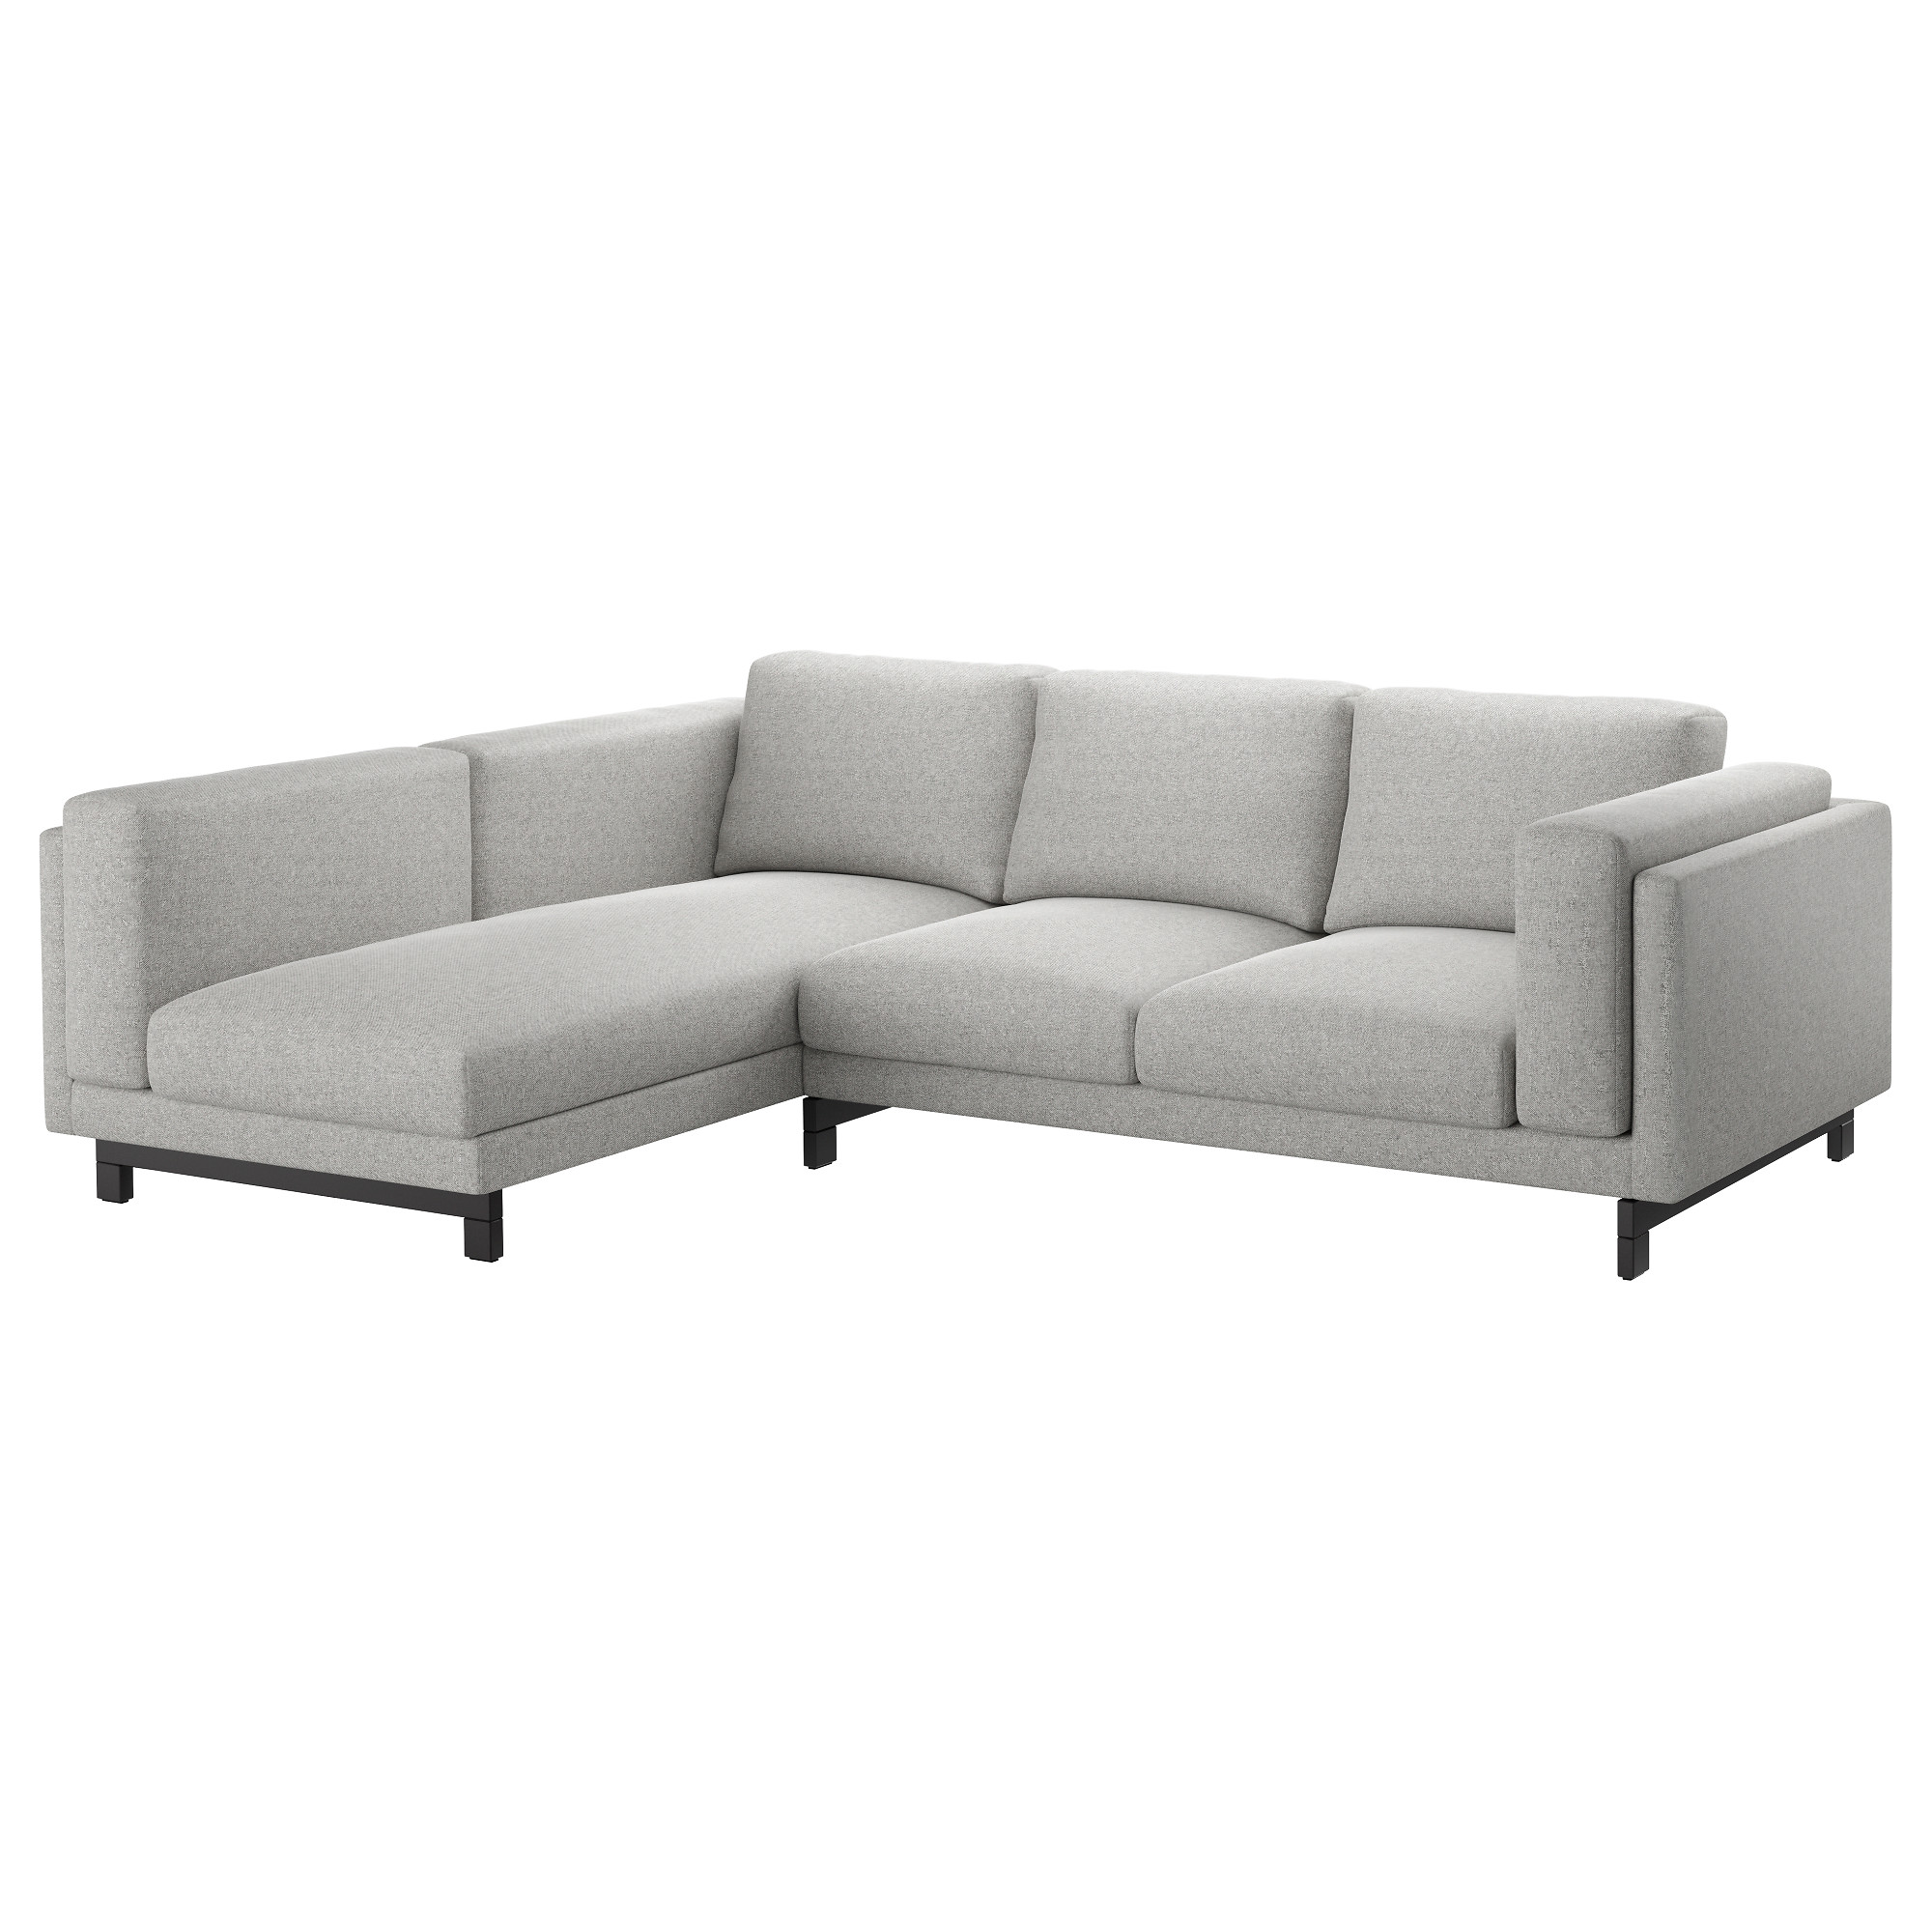 Nockeby Sofa With Chaise Left Tallmyra White Black Chrome Plated Ikea